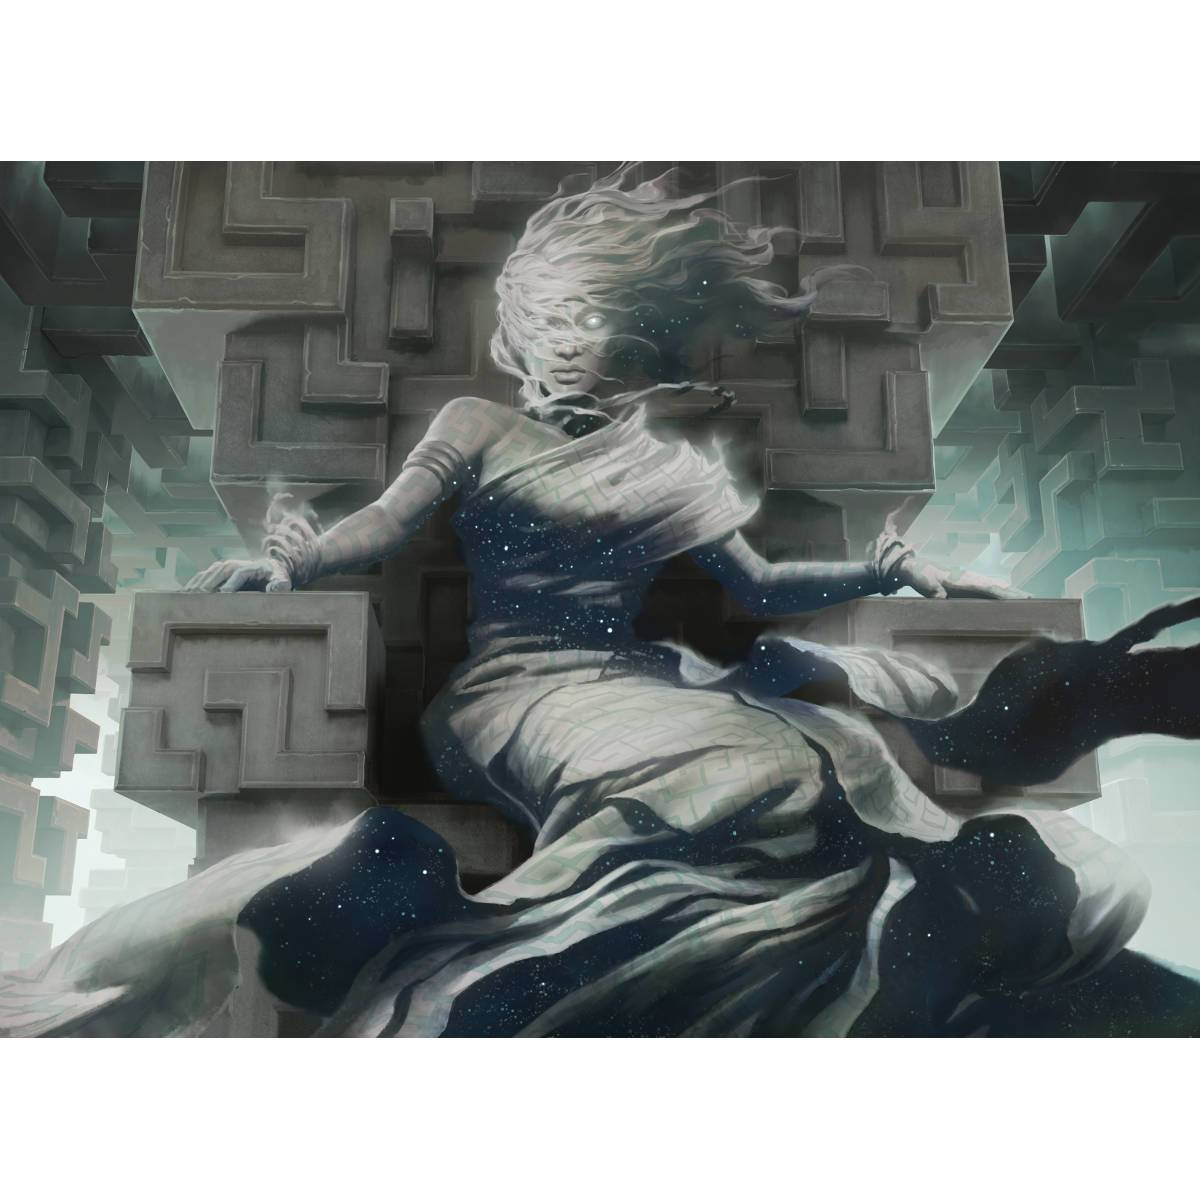 Spirit of the Labyrinth Print - Print - Original Magic Art - Accessories for Magic the Gathering and other card games